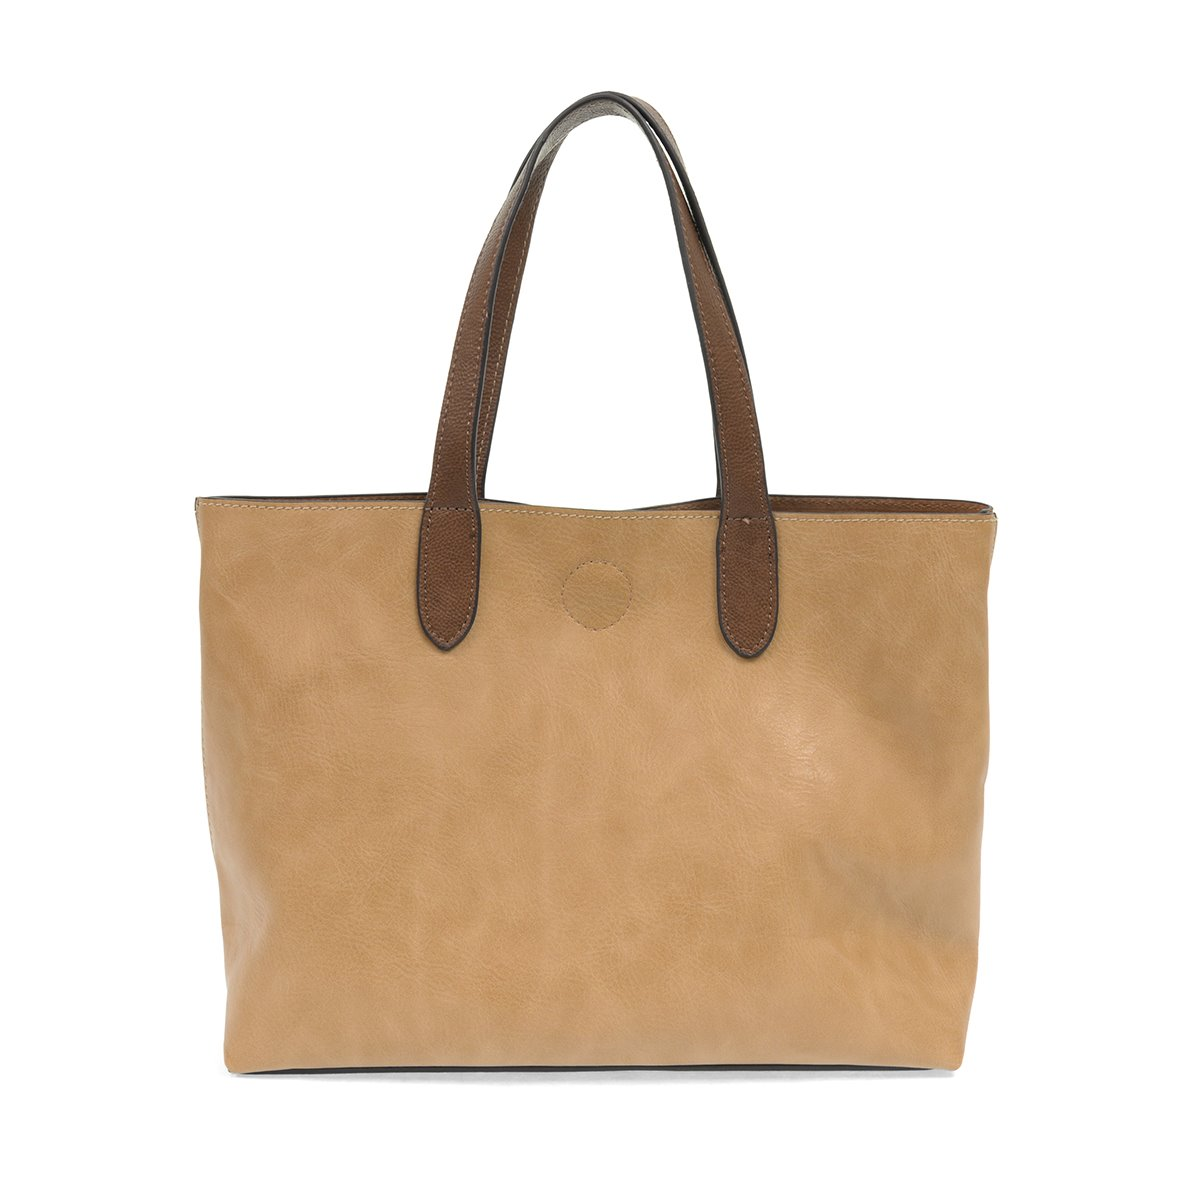 Camel Mariah Medium Handbag Tote with Coffee Handles